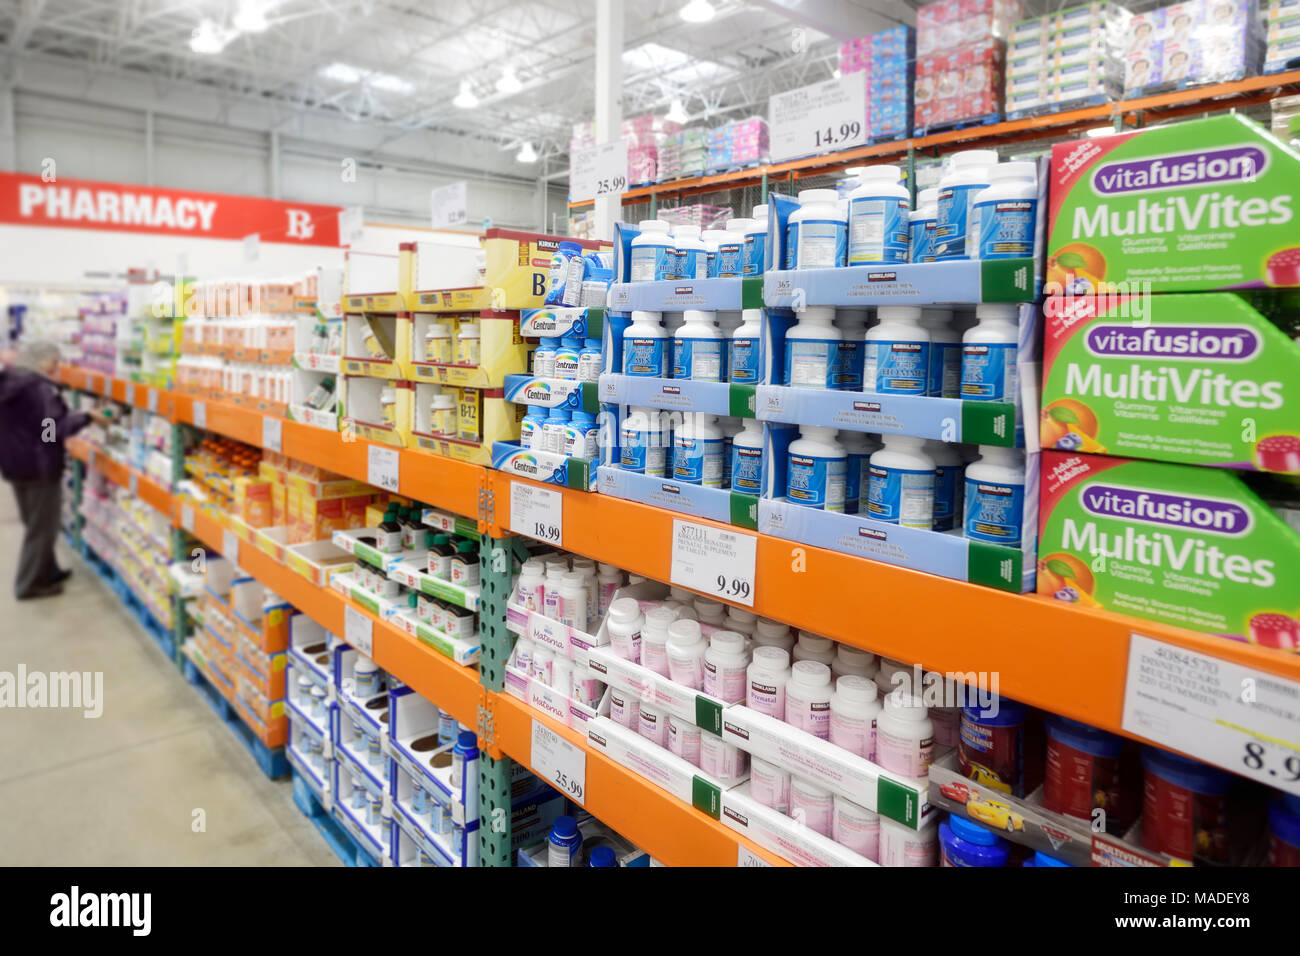 British Pharmacy Chain Stock Photos & British Pharmacy Chain Stock